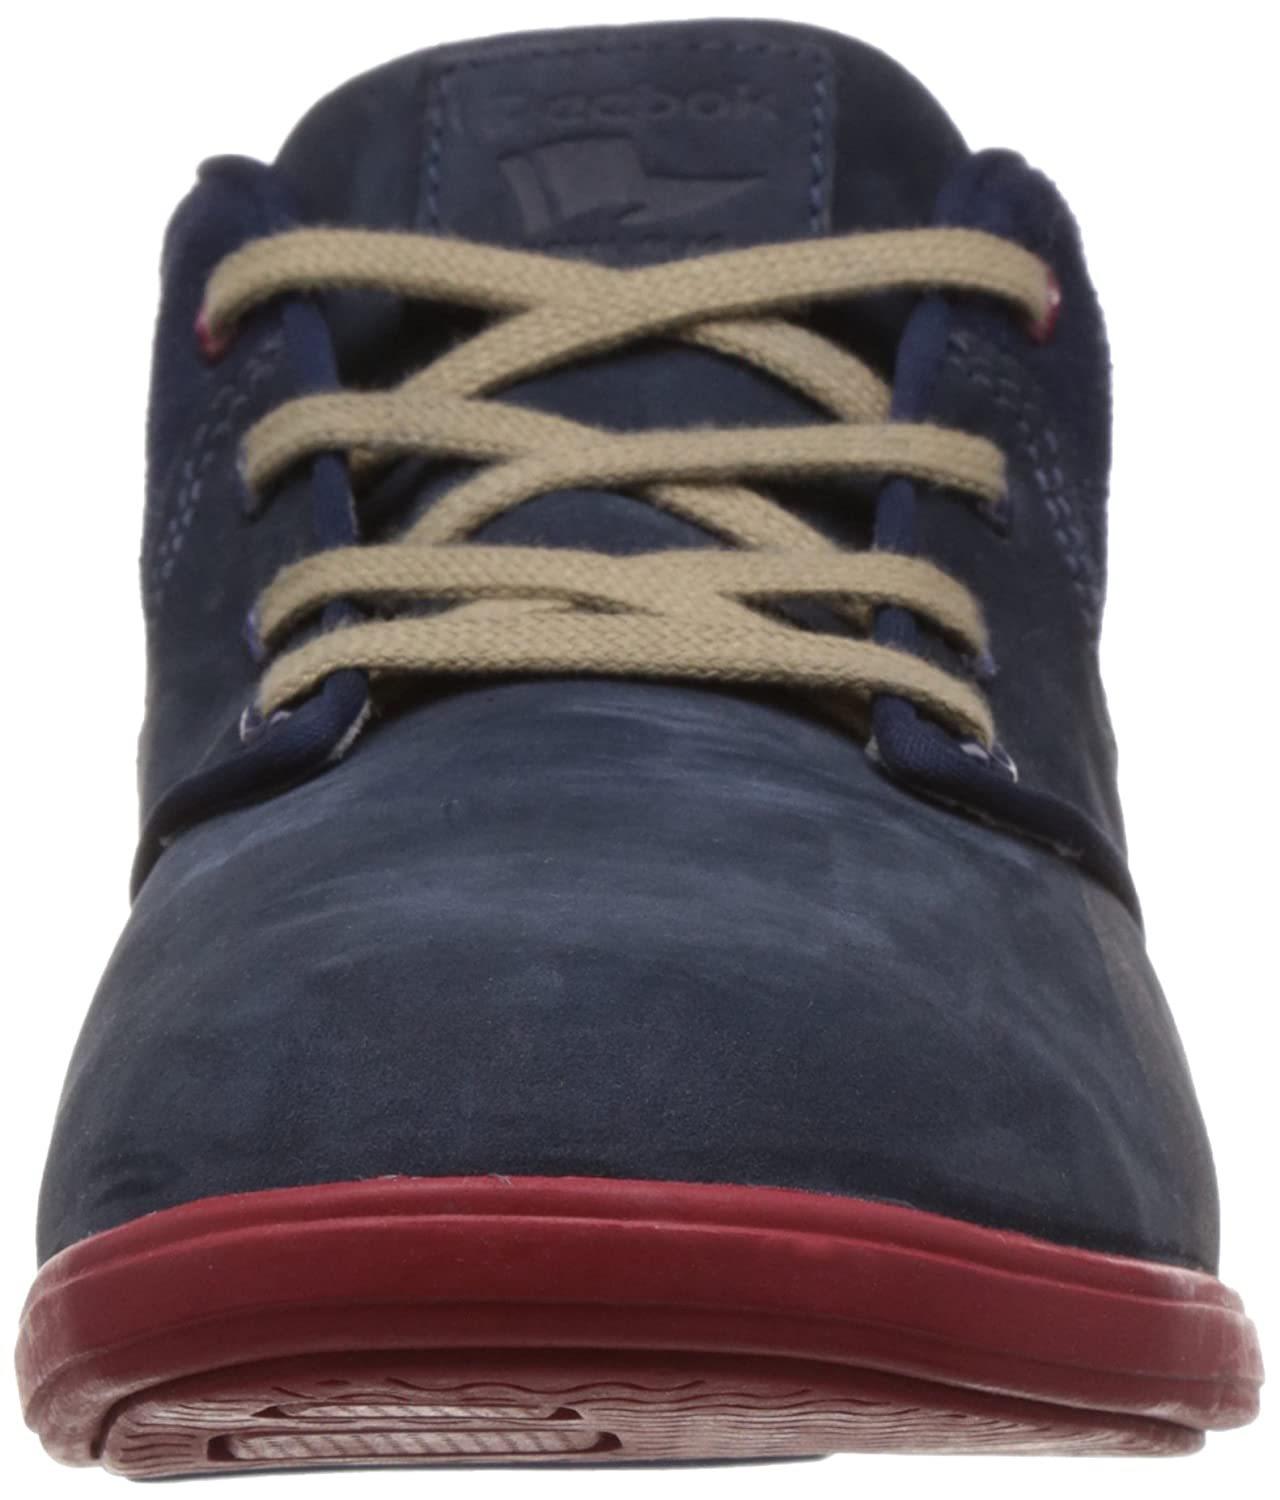 Reebok Classics Men s Royal Chukka Focus Lp Blue Suede Sneakers - 6 UK  Buy  Online at Low Prices in India - Amazon.in 0babb4e8b